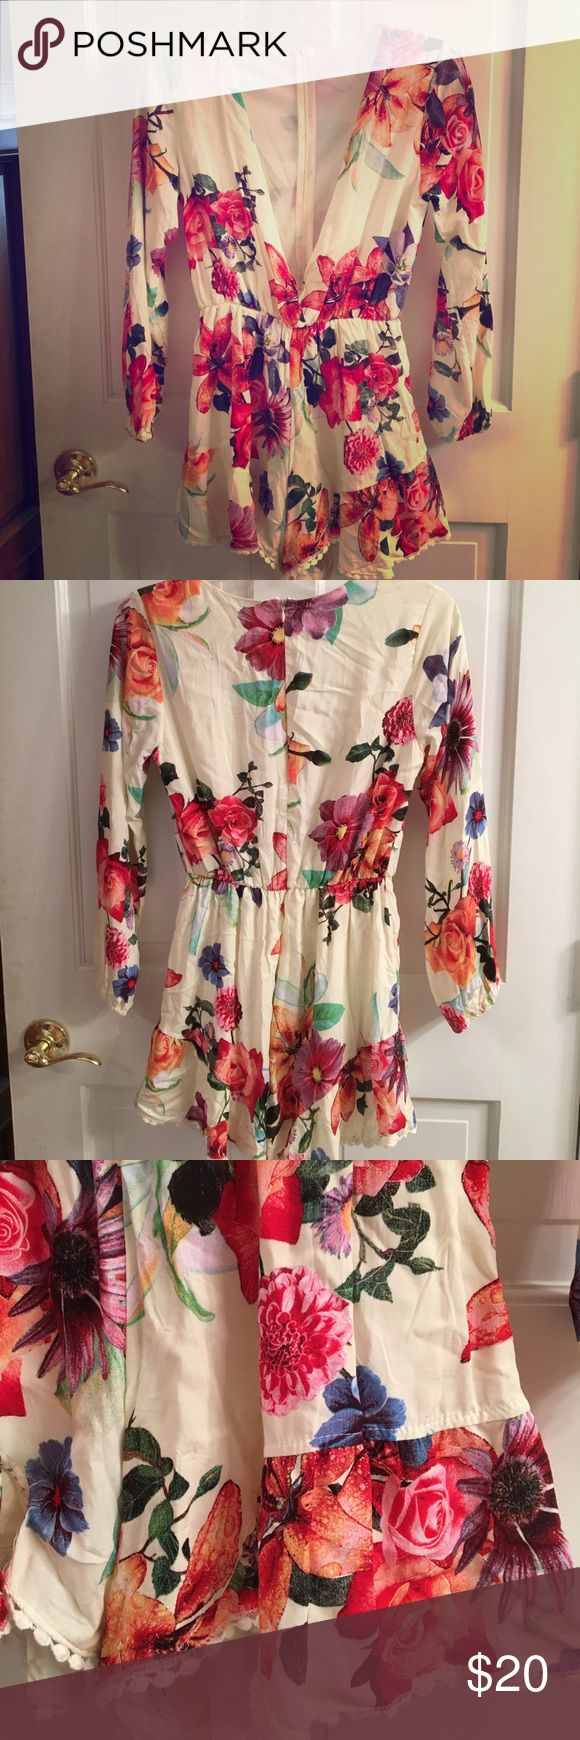 Plunging V-Neck floral romper Love this deep plunging v-neck floral romper. Perfect for a hot summer night out! Dresses Long Sleeve